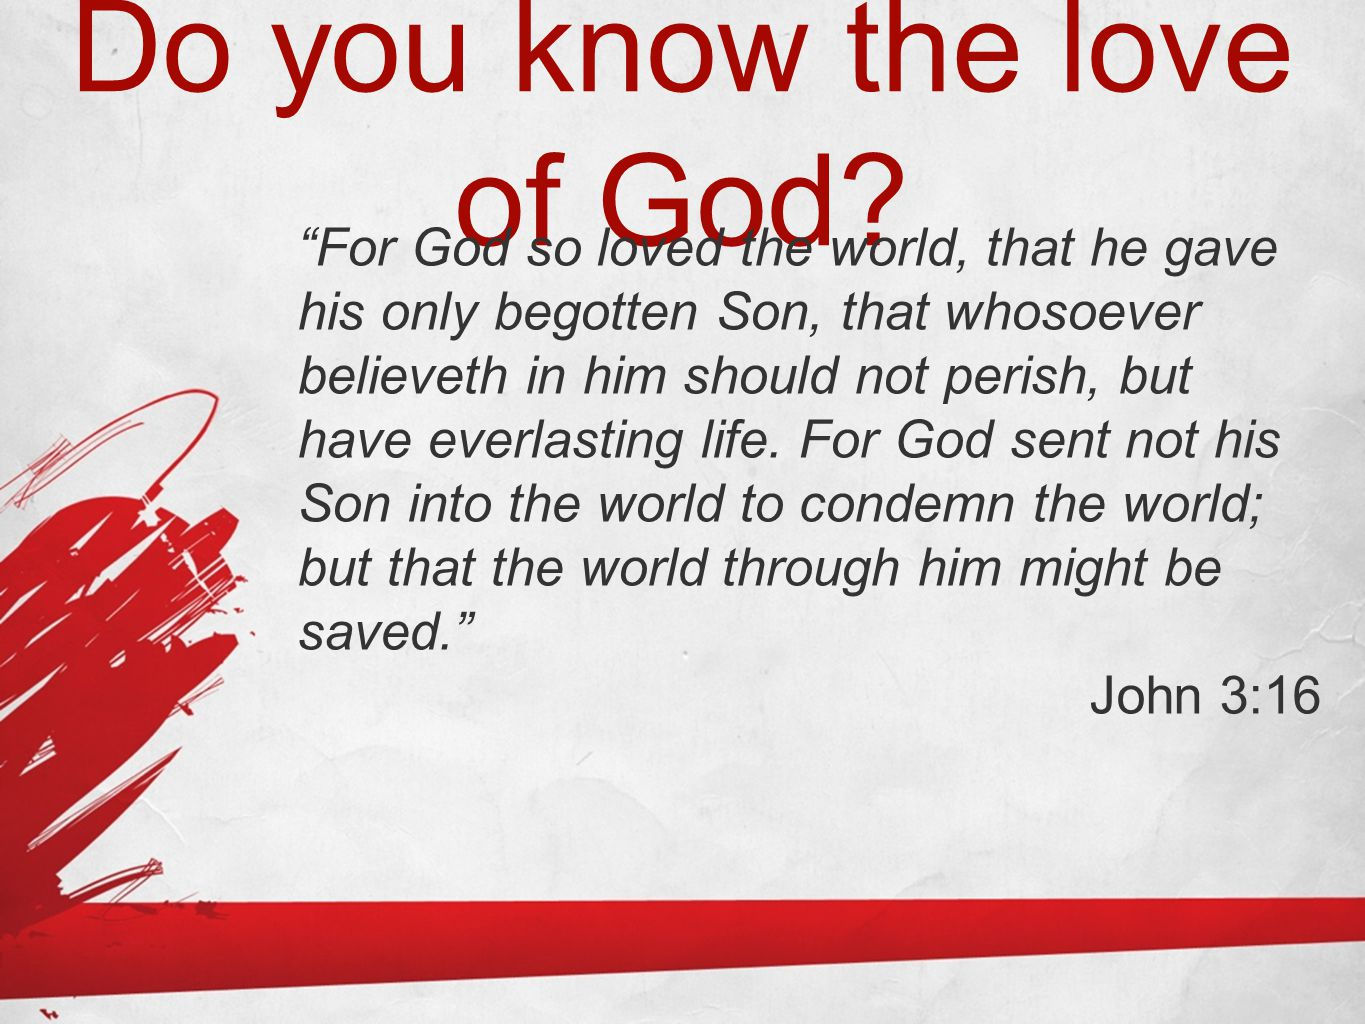 Do you know the love of God.